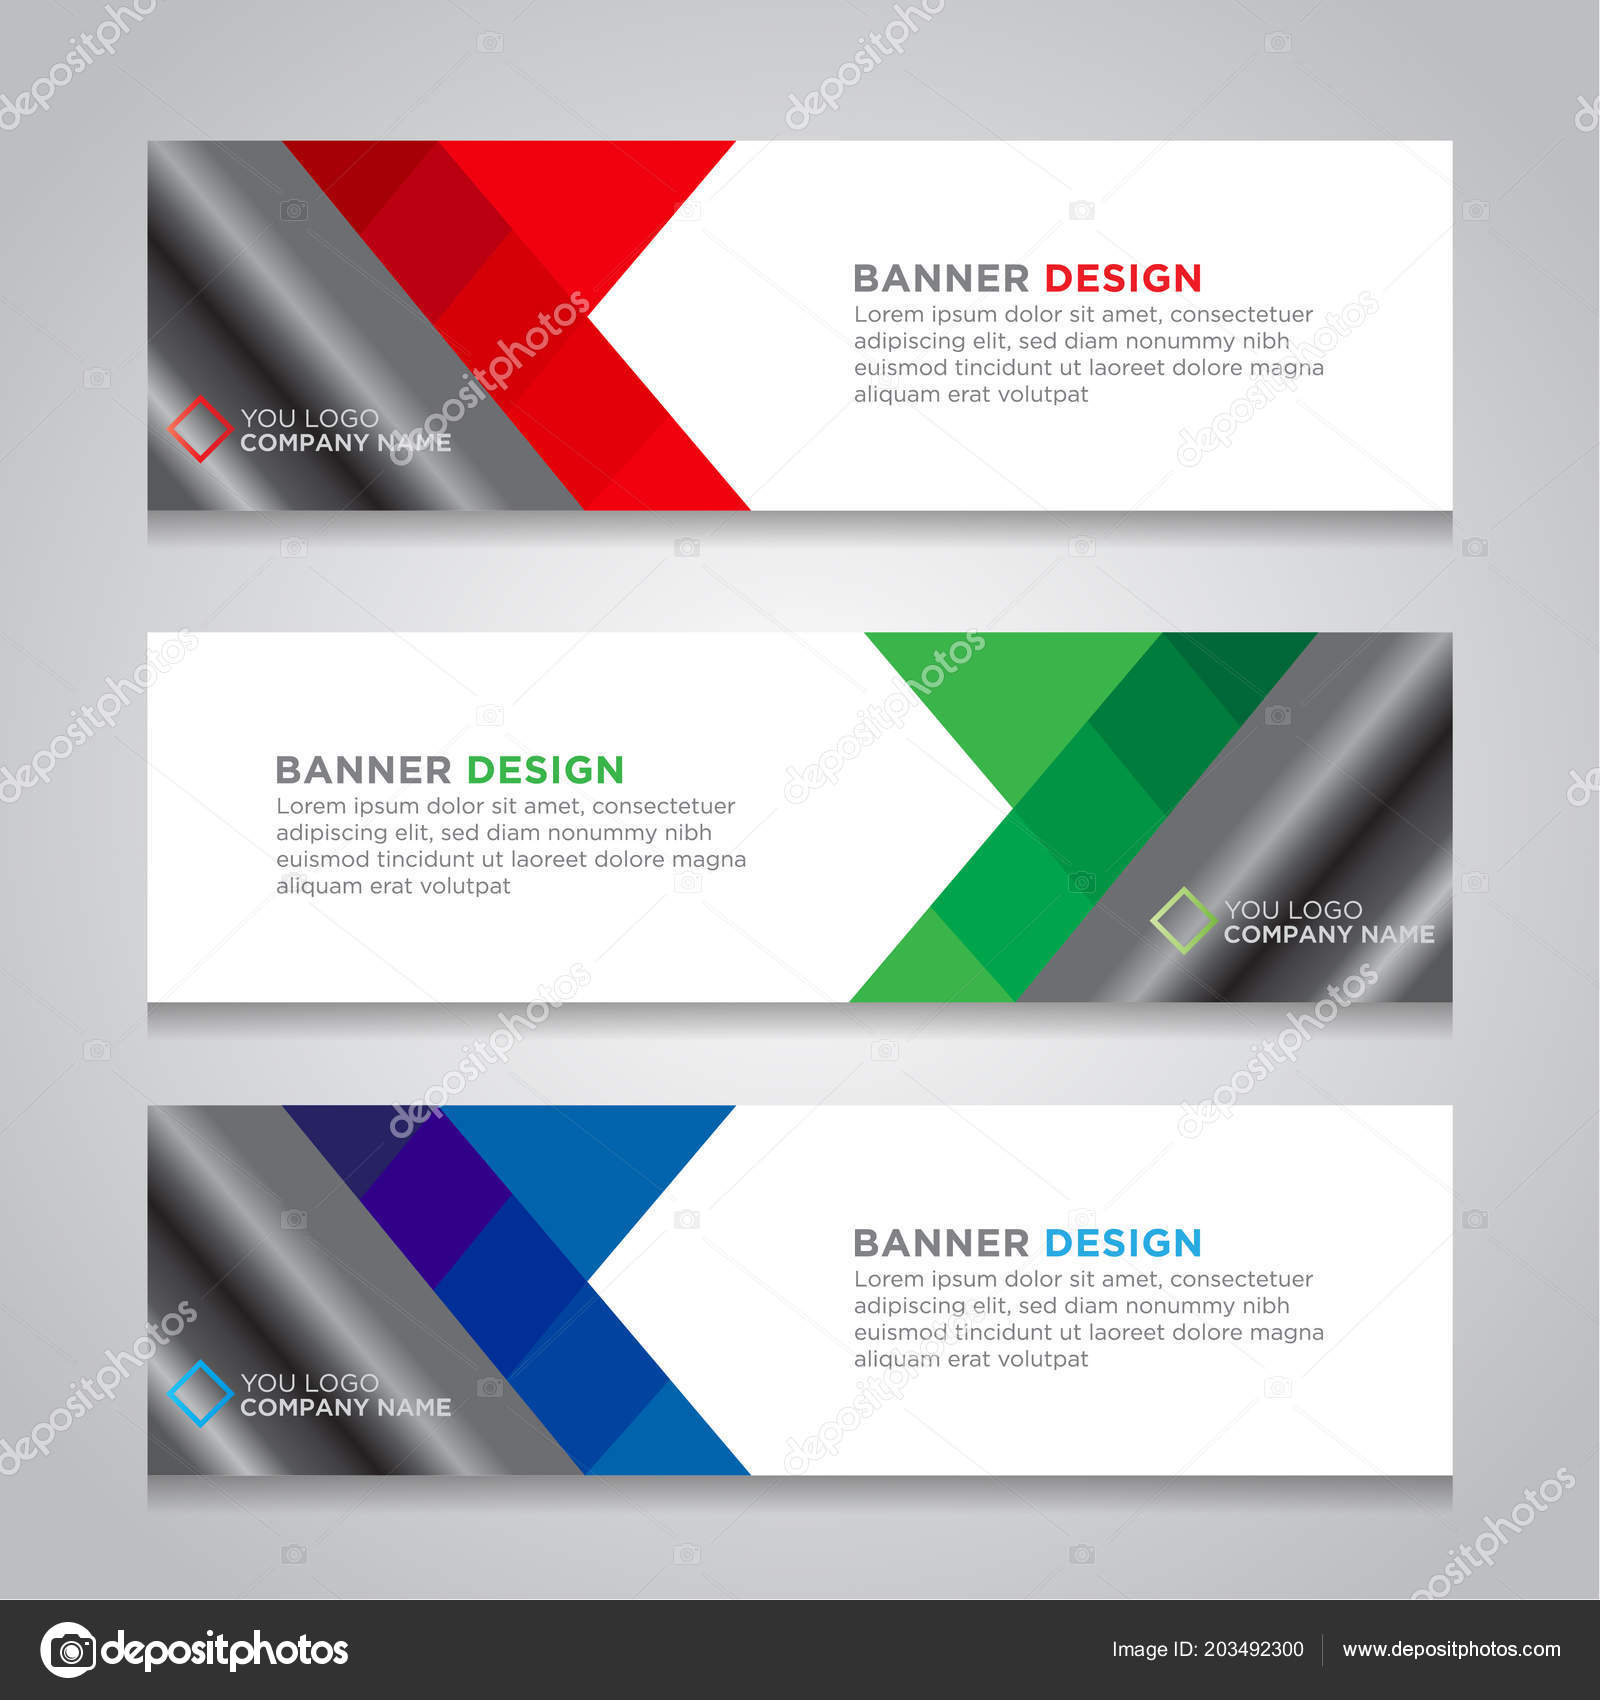 Abstract Web Banner Design Background Header Templates Stock